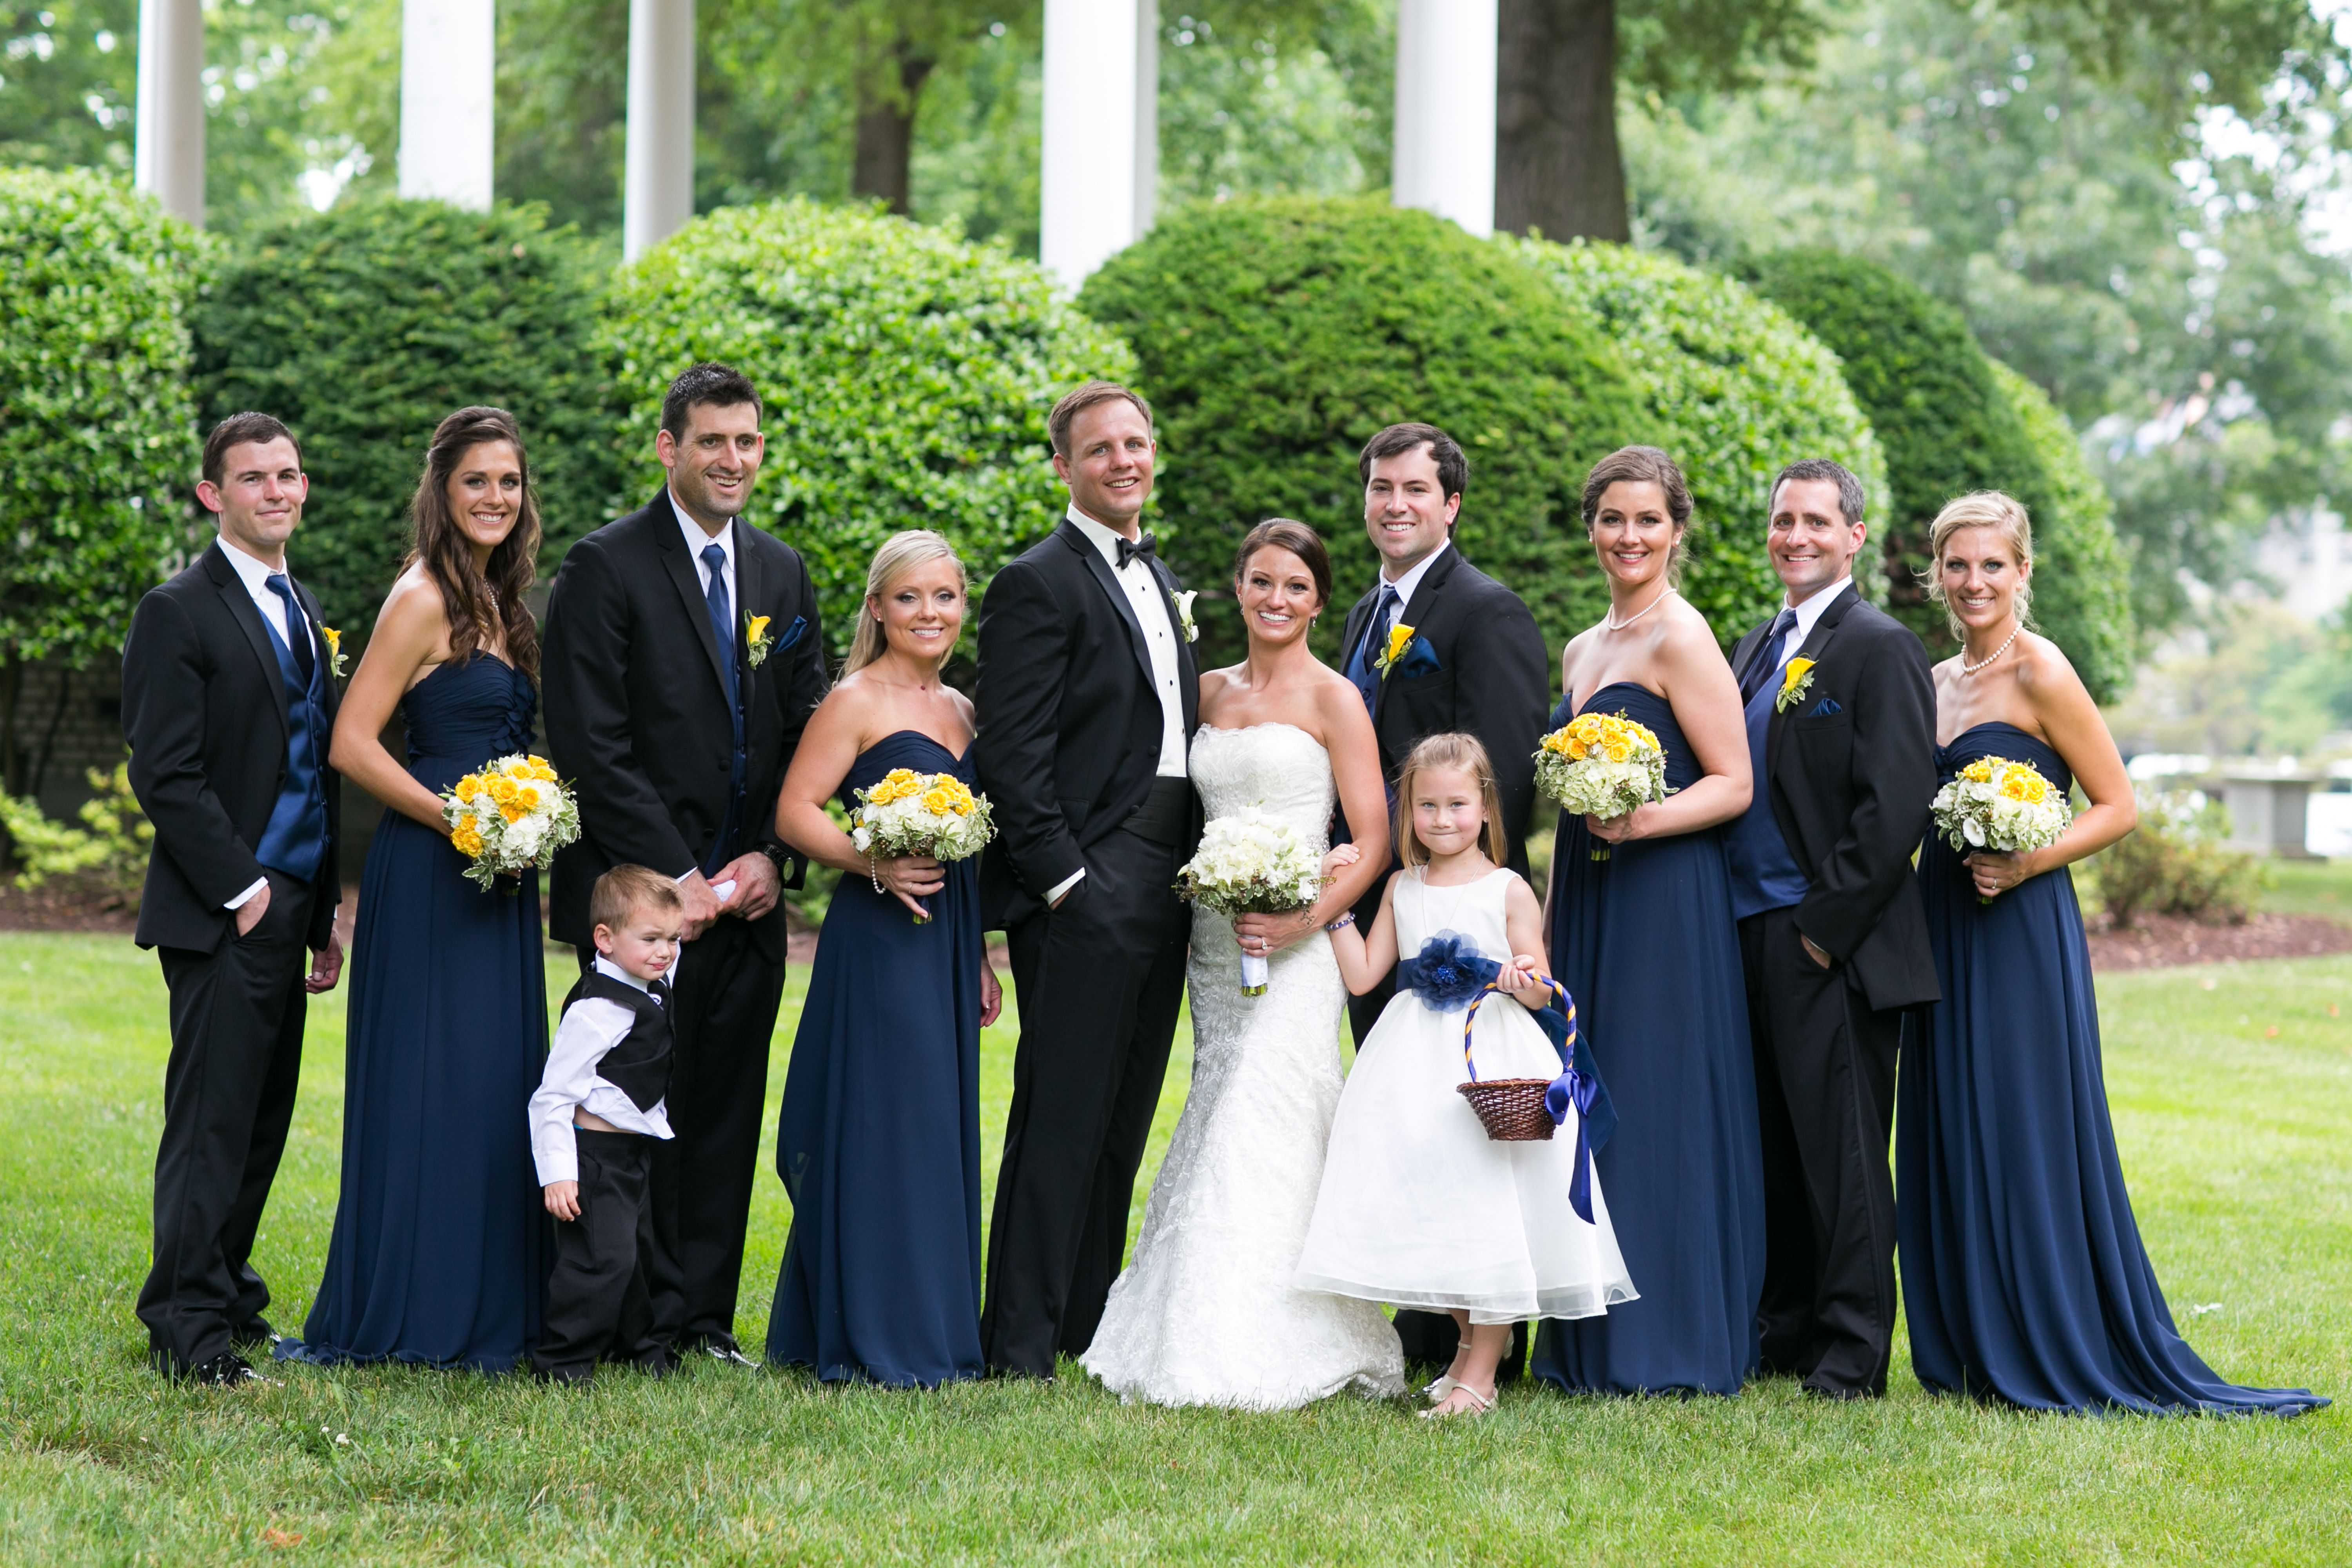 Bill levkoff long navy bridesmaid dresses bridesmaid for Navy blue and white wedding dress